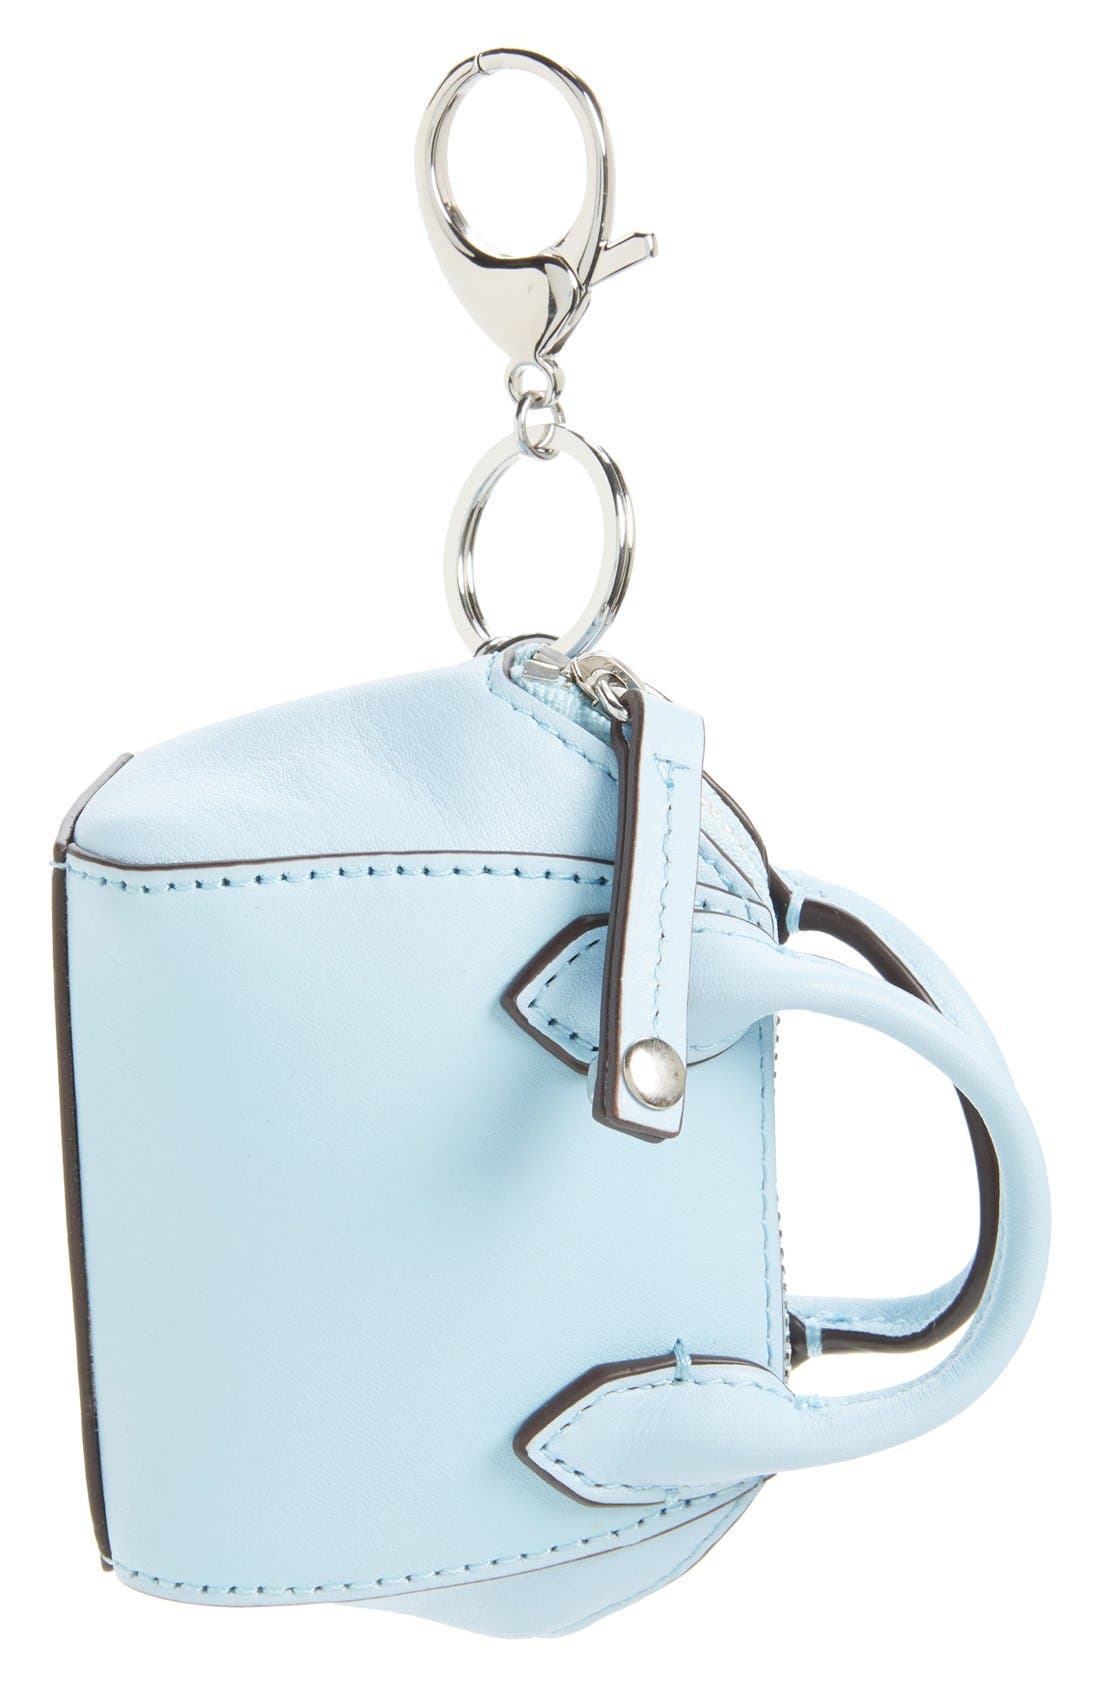 Alternate Image 1 Selected - Rebecca Minkoff 'Perry Satchel' Bag Charm